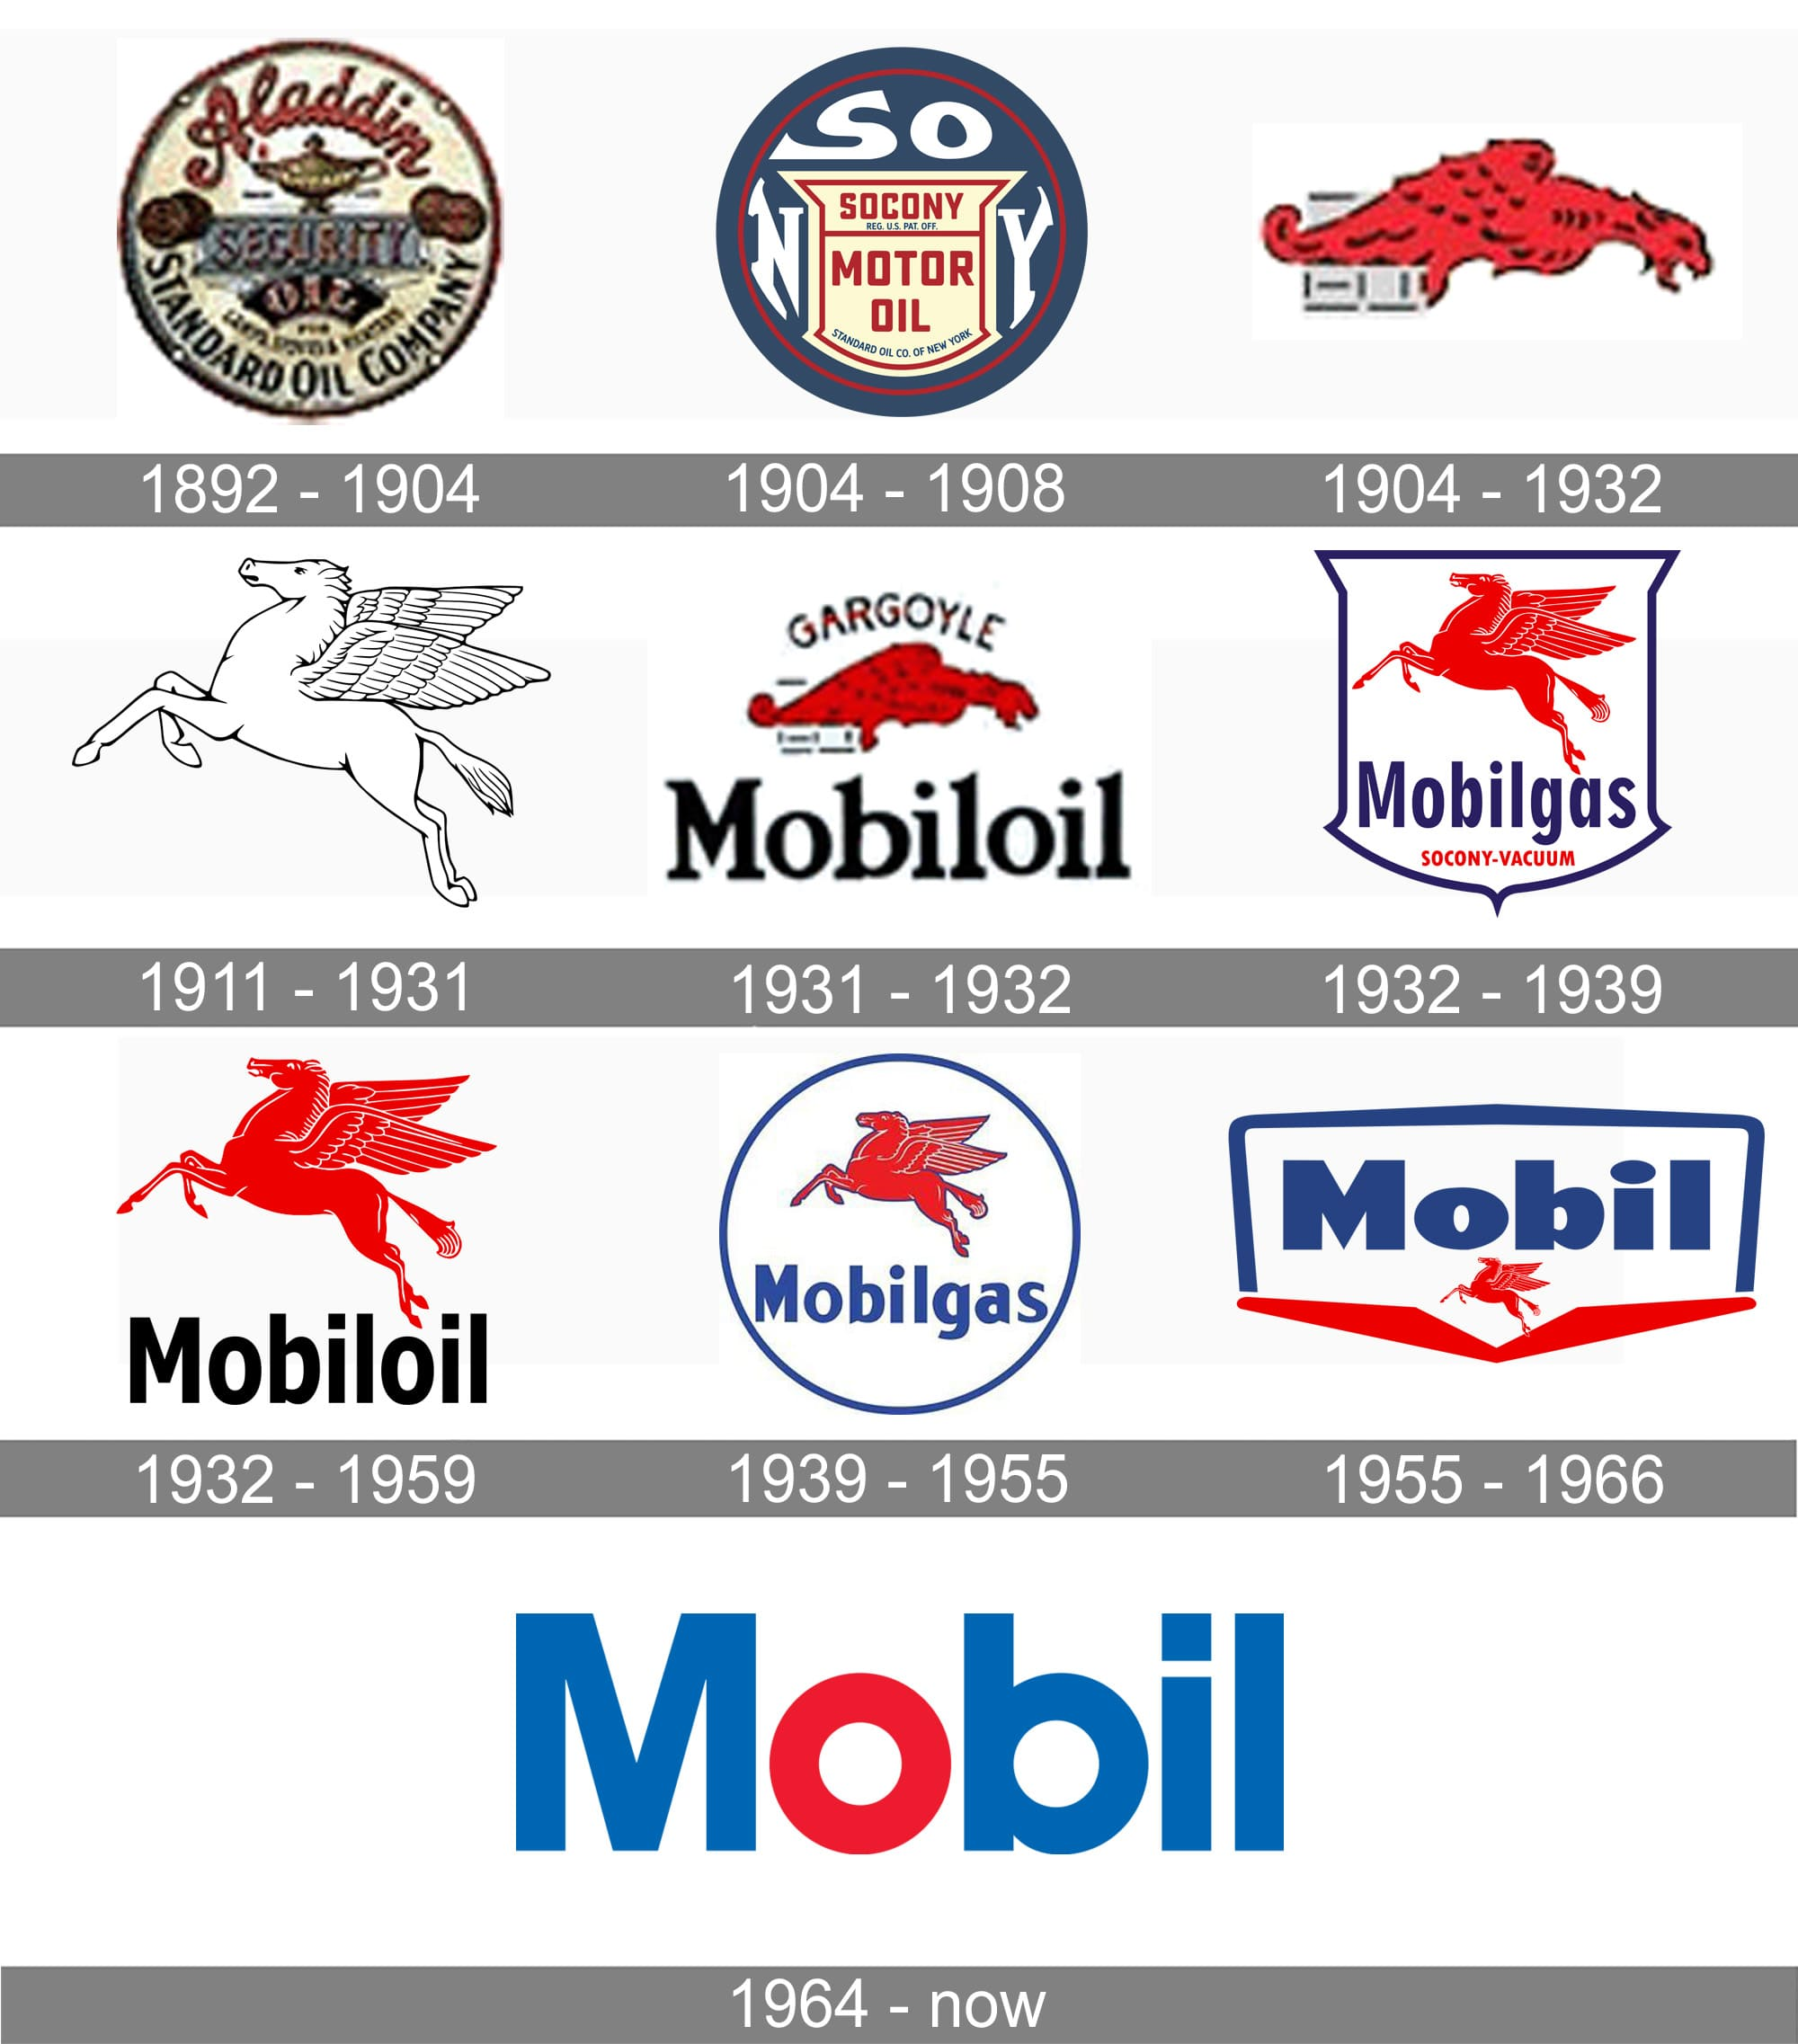 mobil logo mobil symbol meaning history and evolution